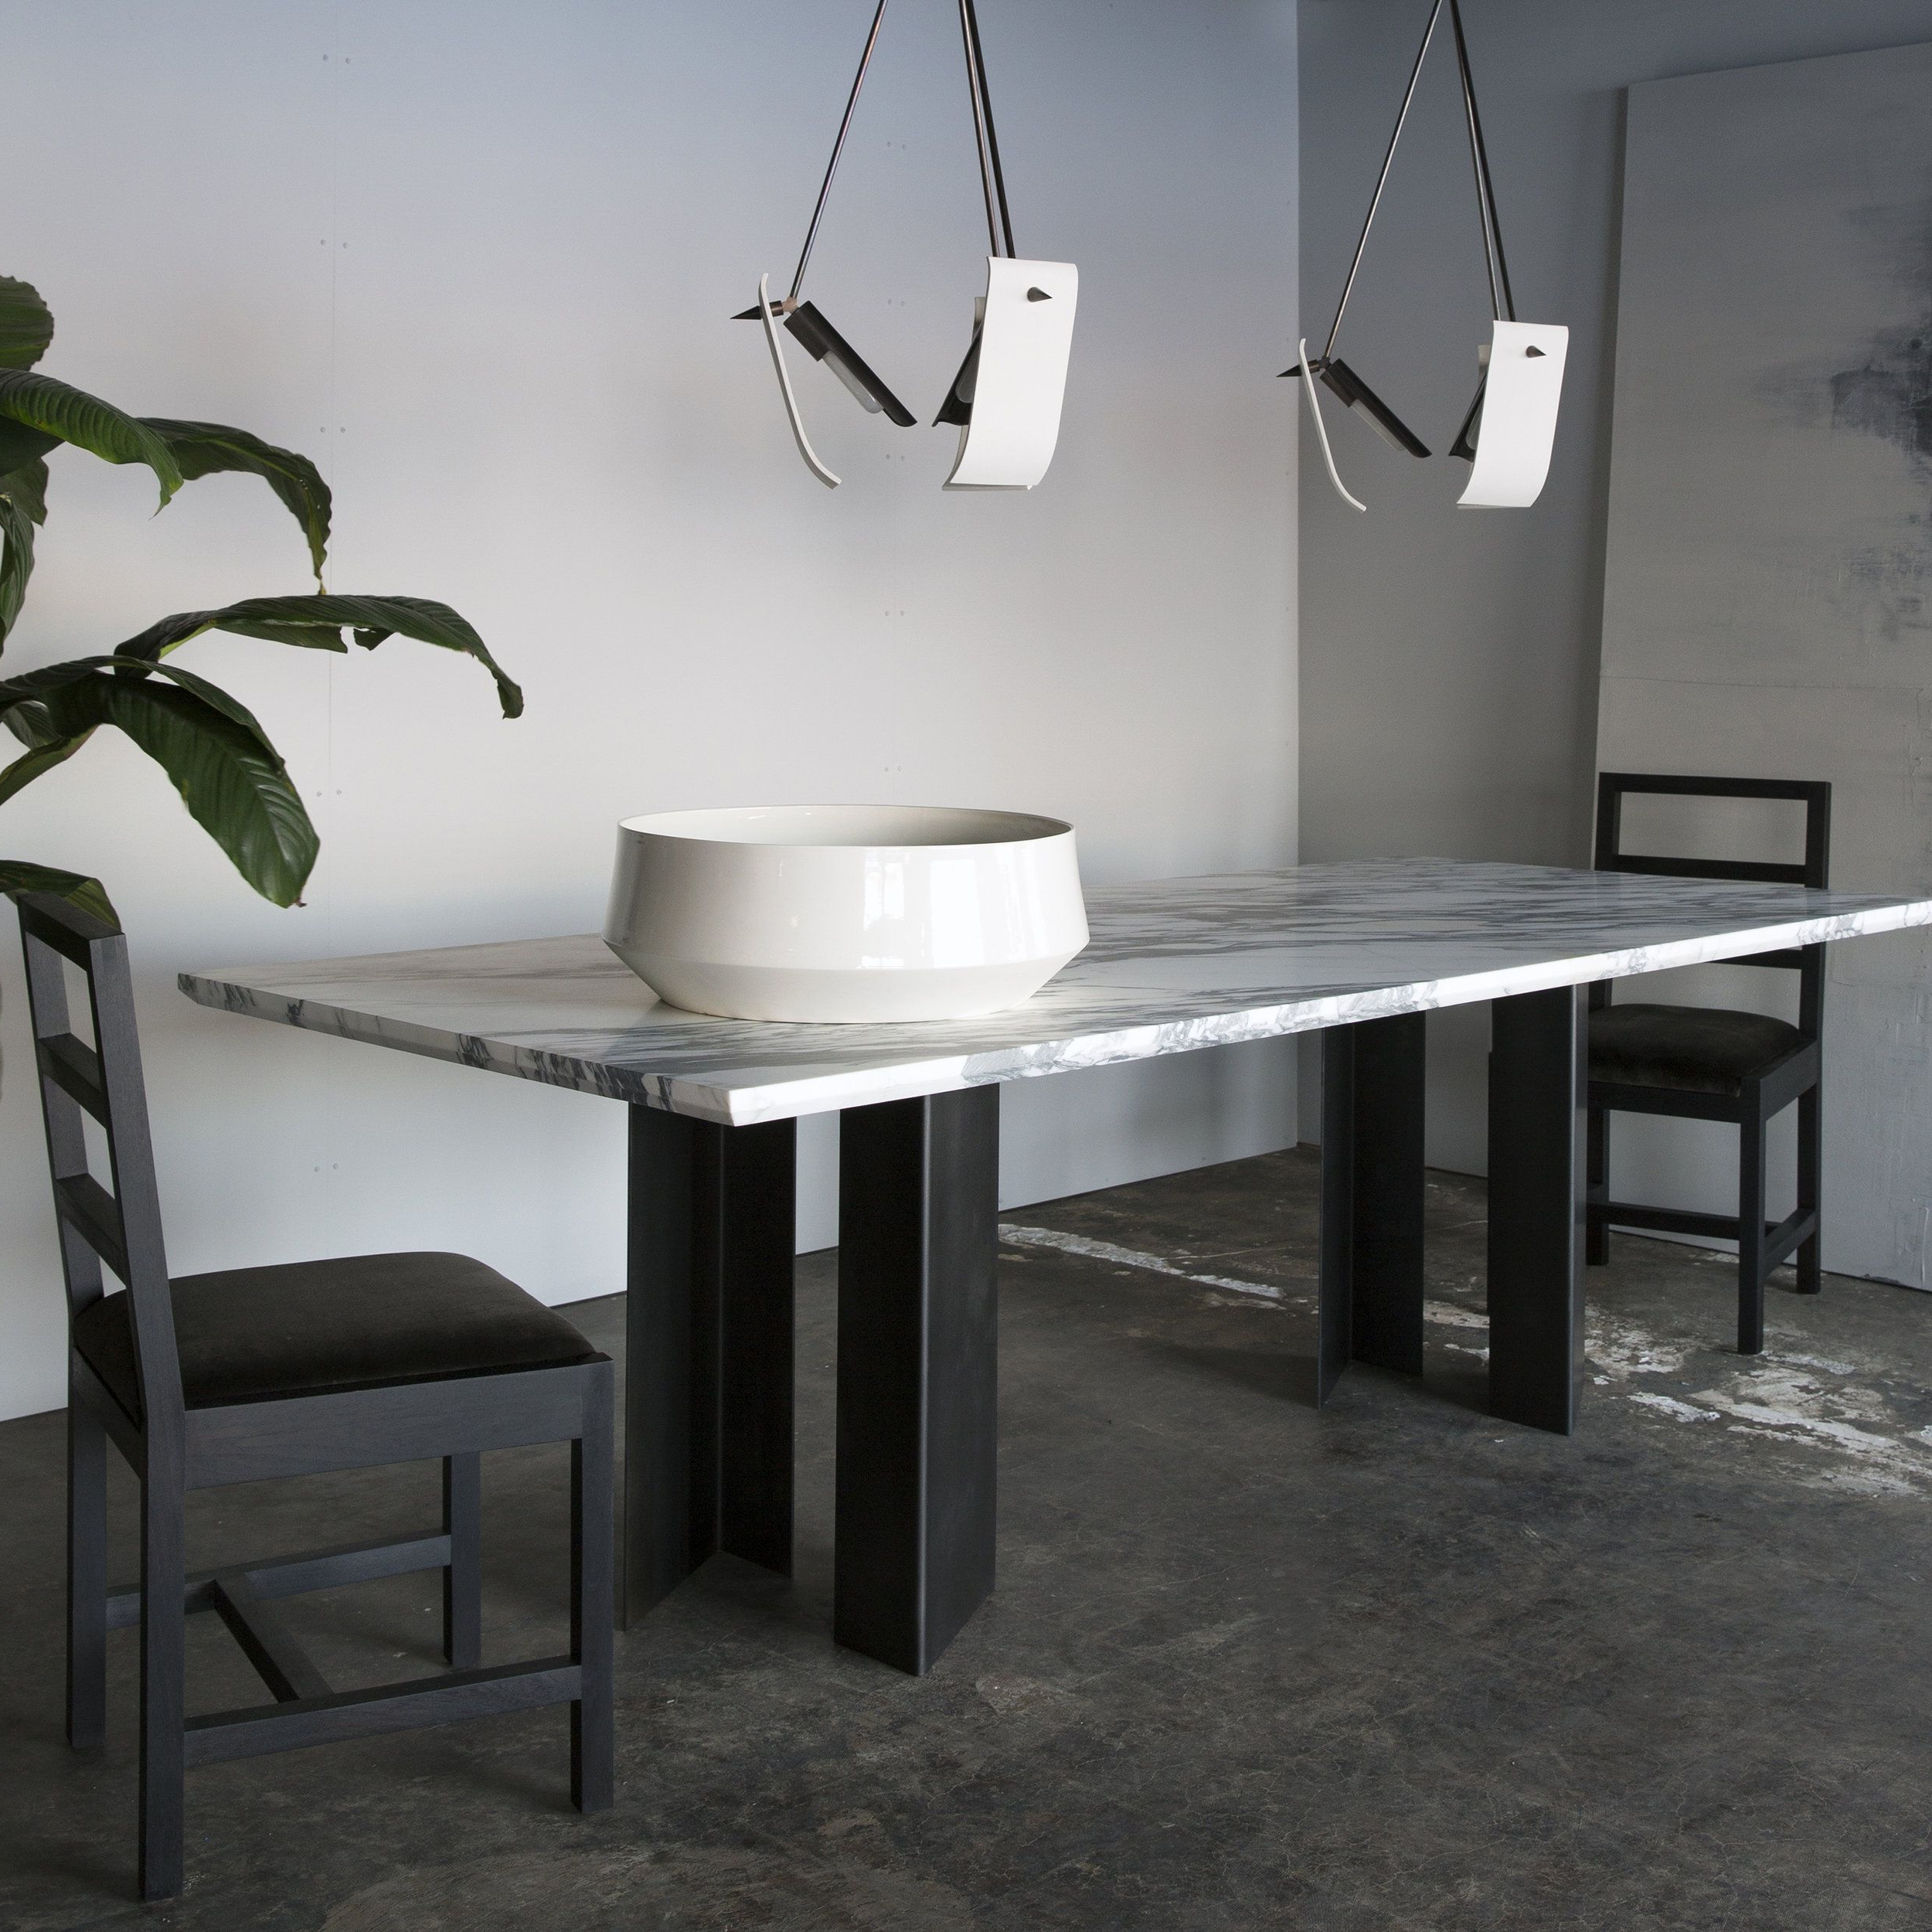 Furniture, Dining Table Chairs Pertaining To Well Liked Eclipse Dining Tables (View 4 of 30)